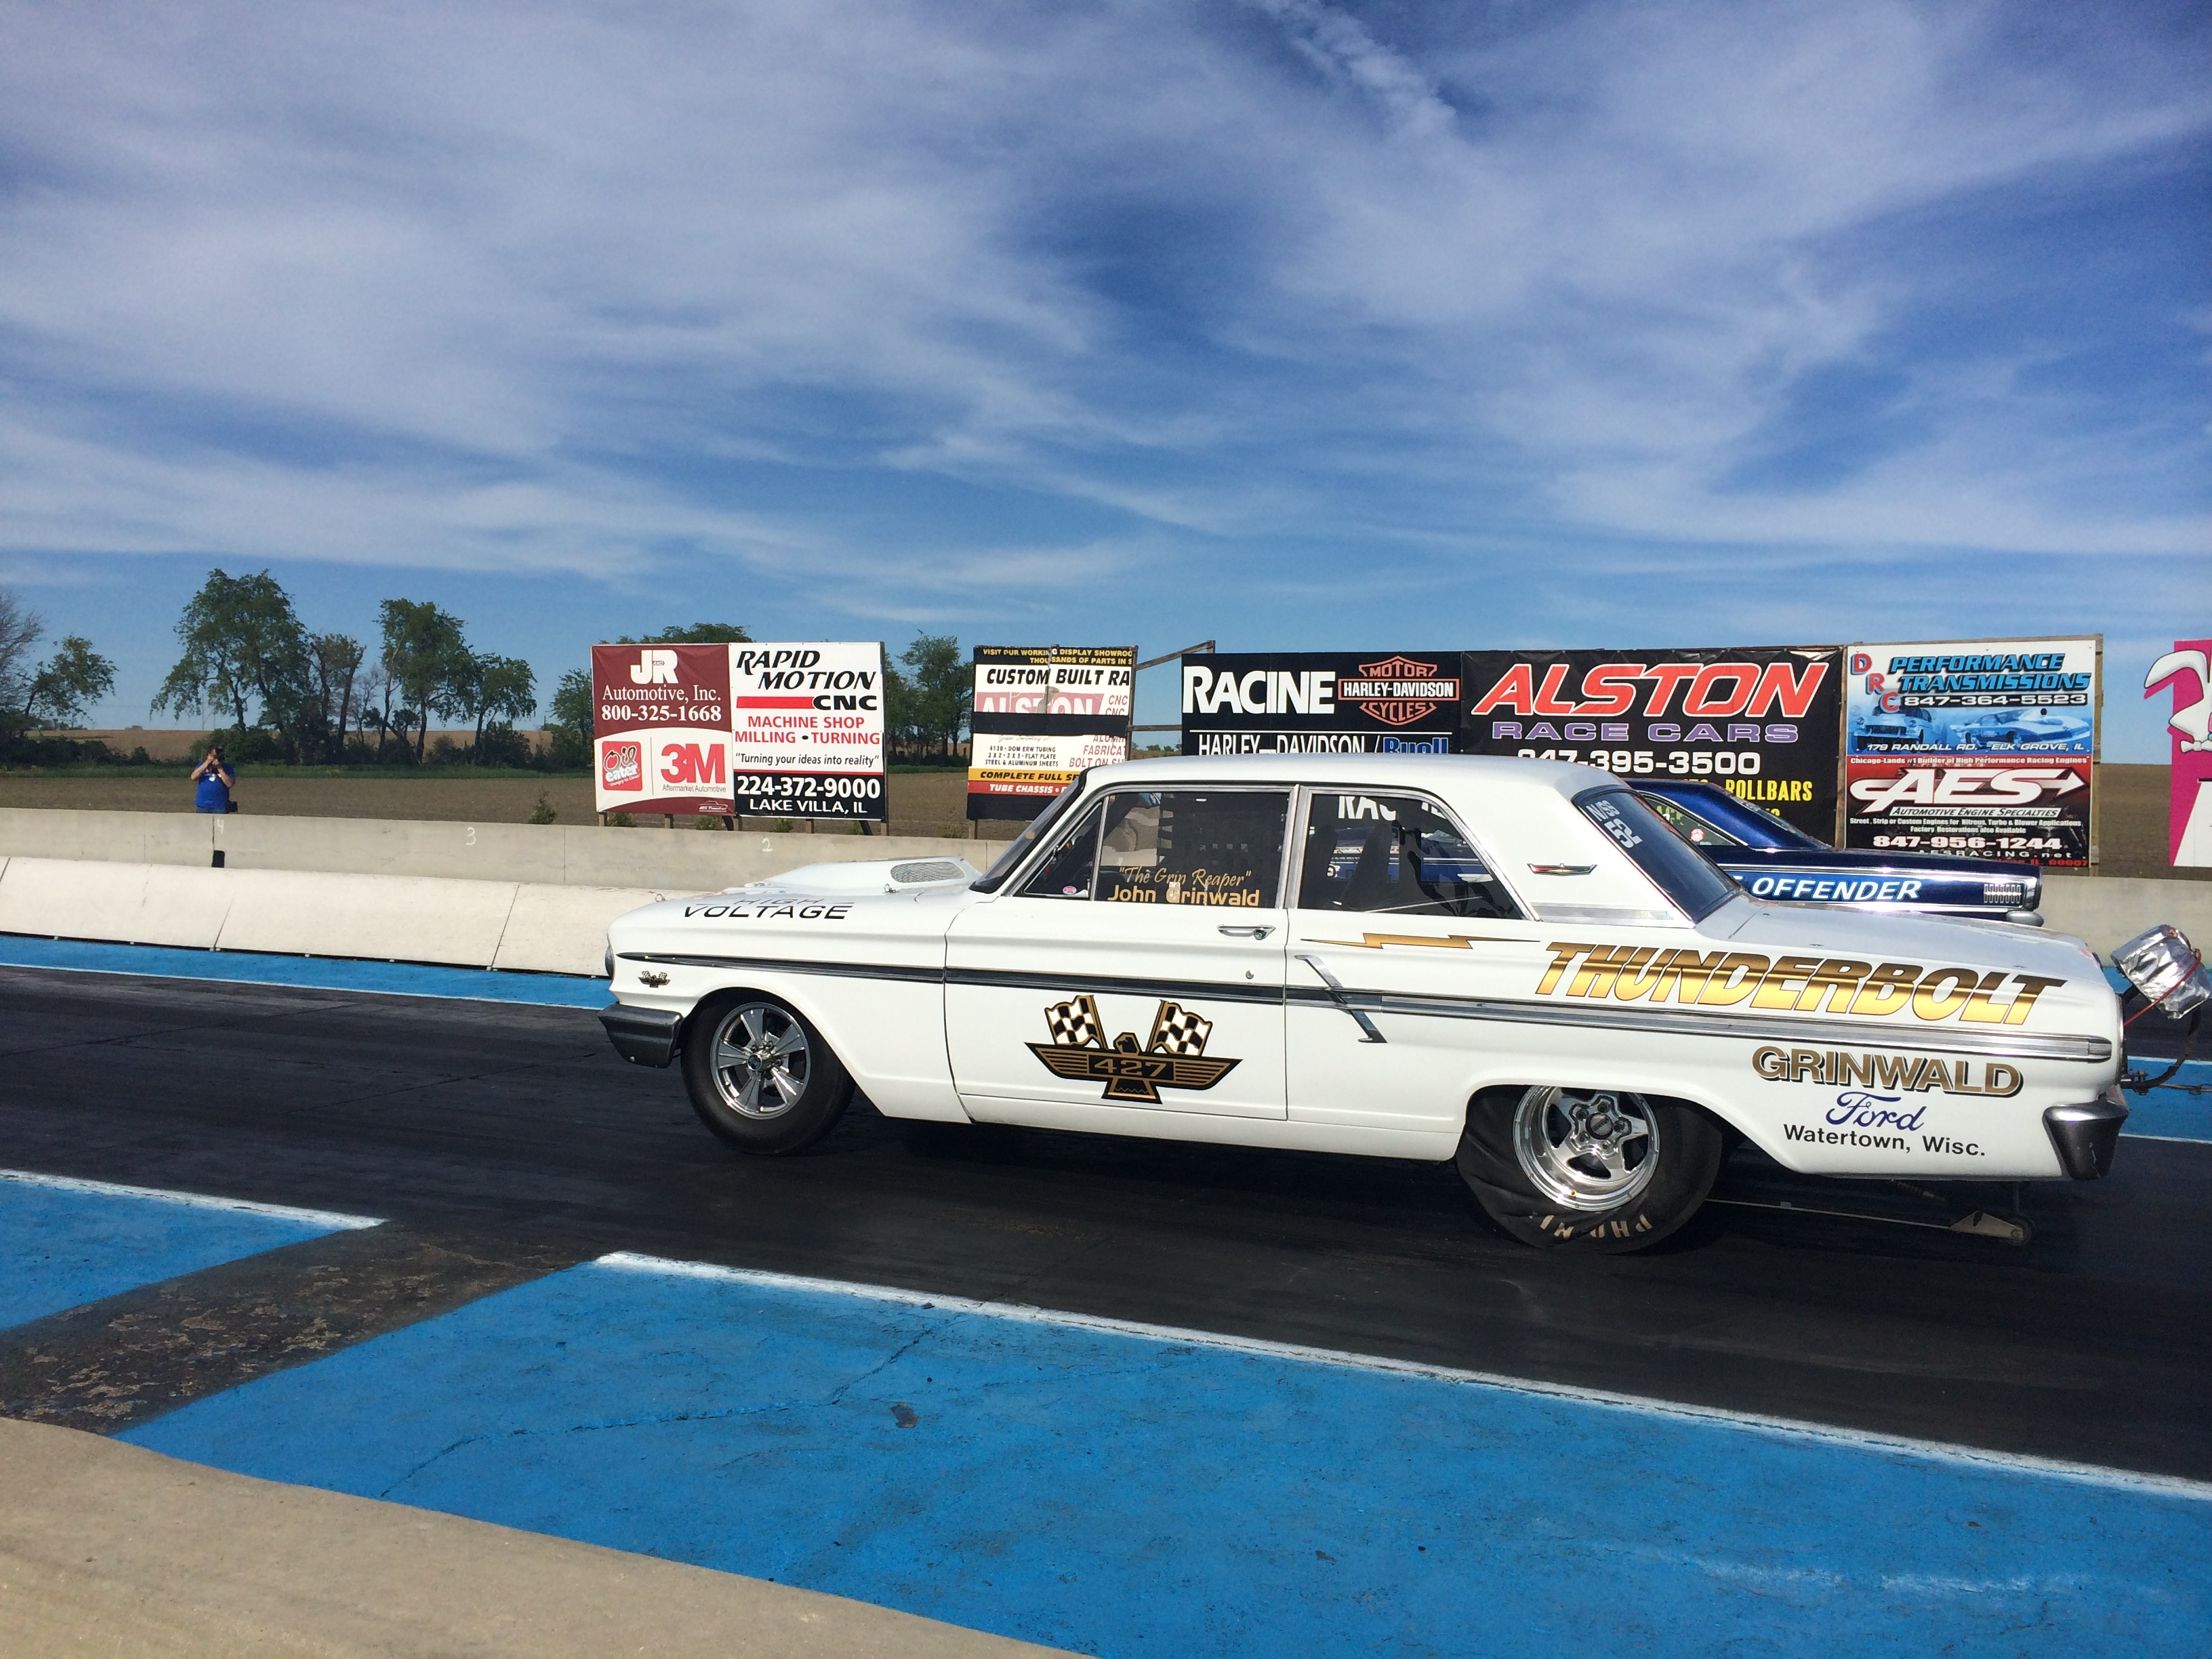 Nostalgia Super Stock Meet Our Members 1964 Dodge 330 Max Wedge Ford Thunder Bolt 2dr Sedan Owner John Grinwald Watertown Wi All Aluminum 513 Ci Fe Built By Roush Yates Liberty Clutchless 5 Speed With 7